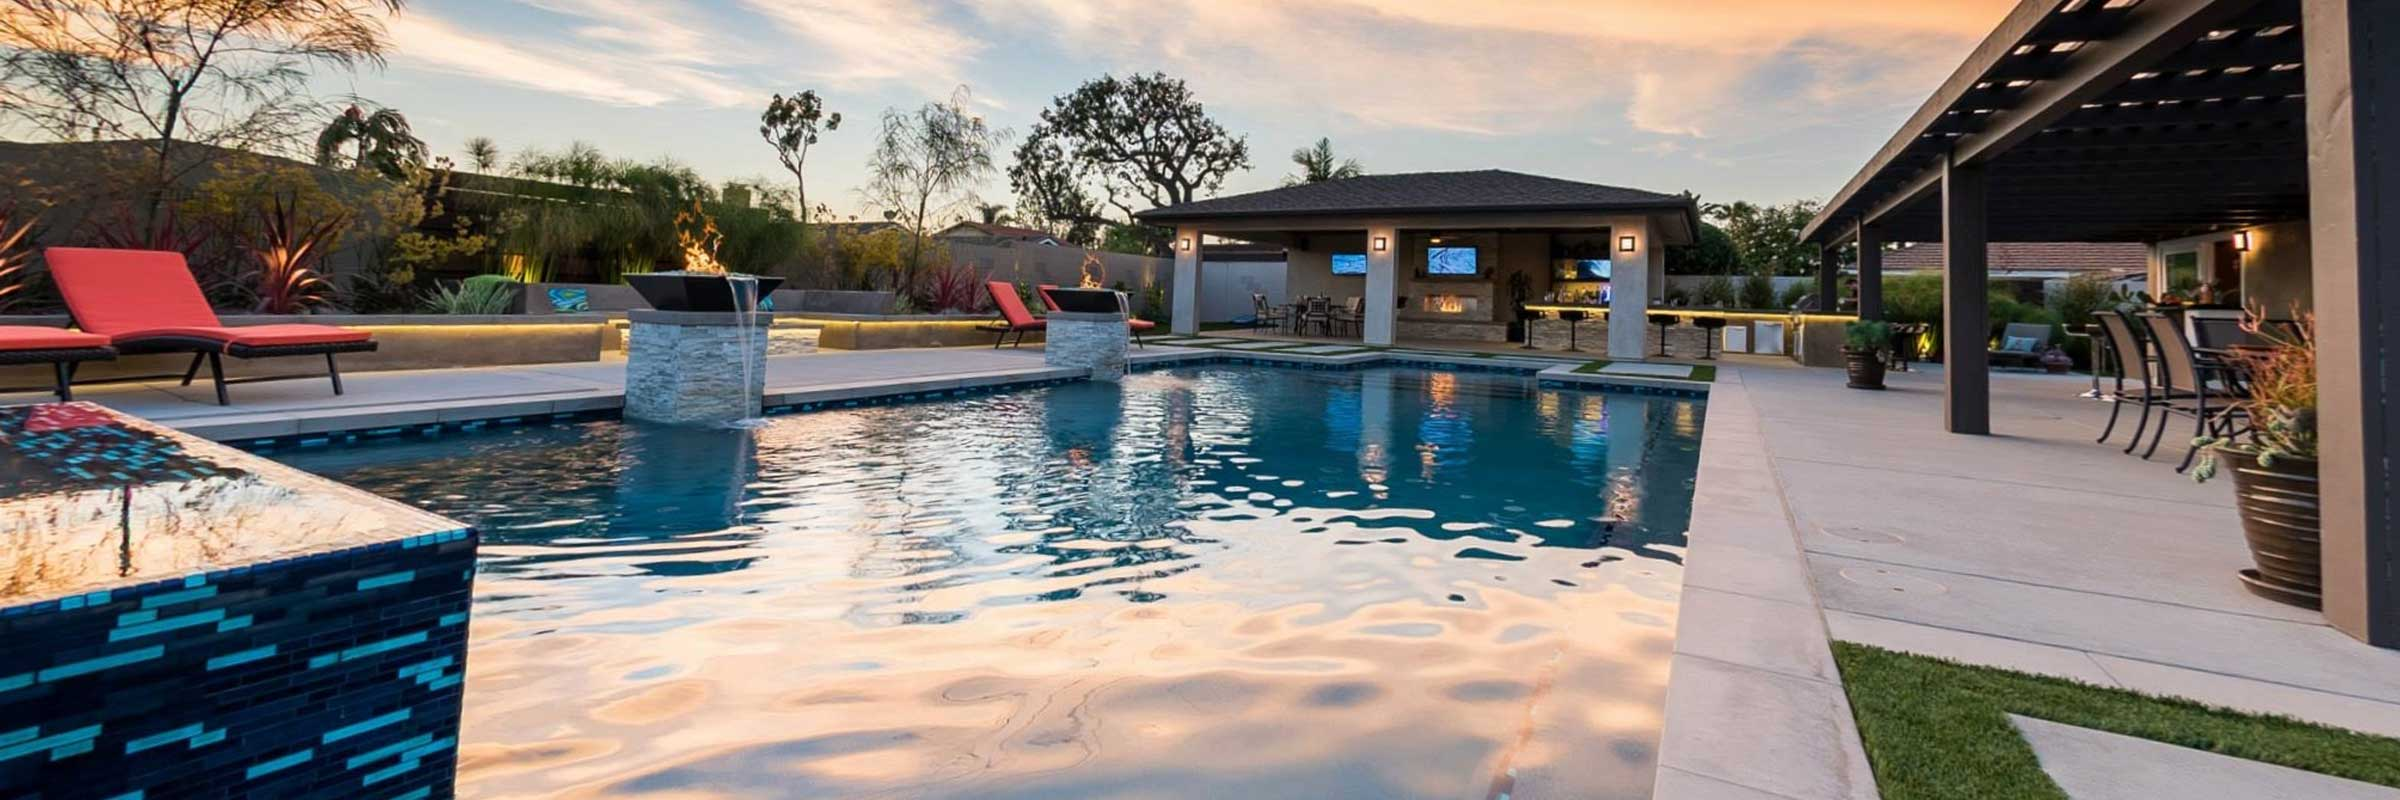 Swimming Pool & Landscape Design and Construction Orange ...